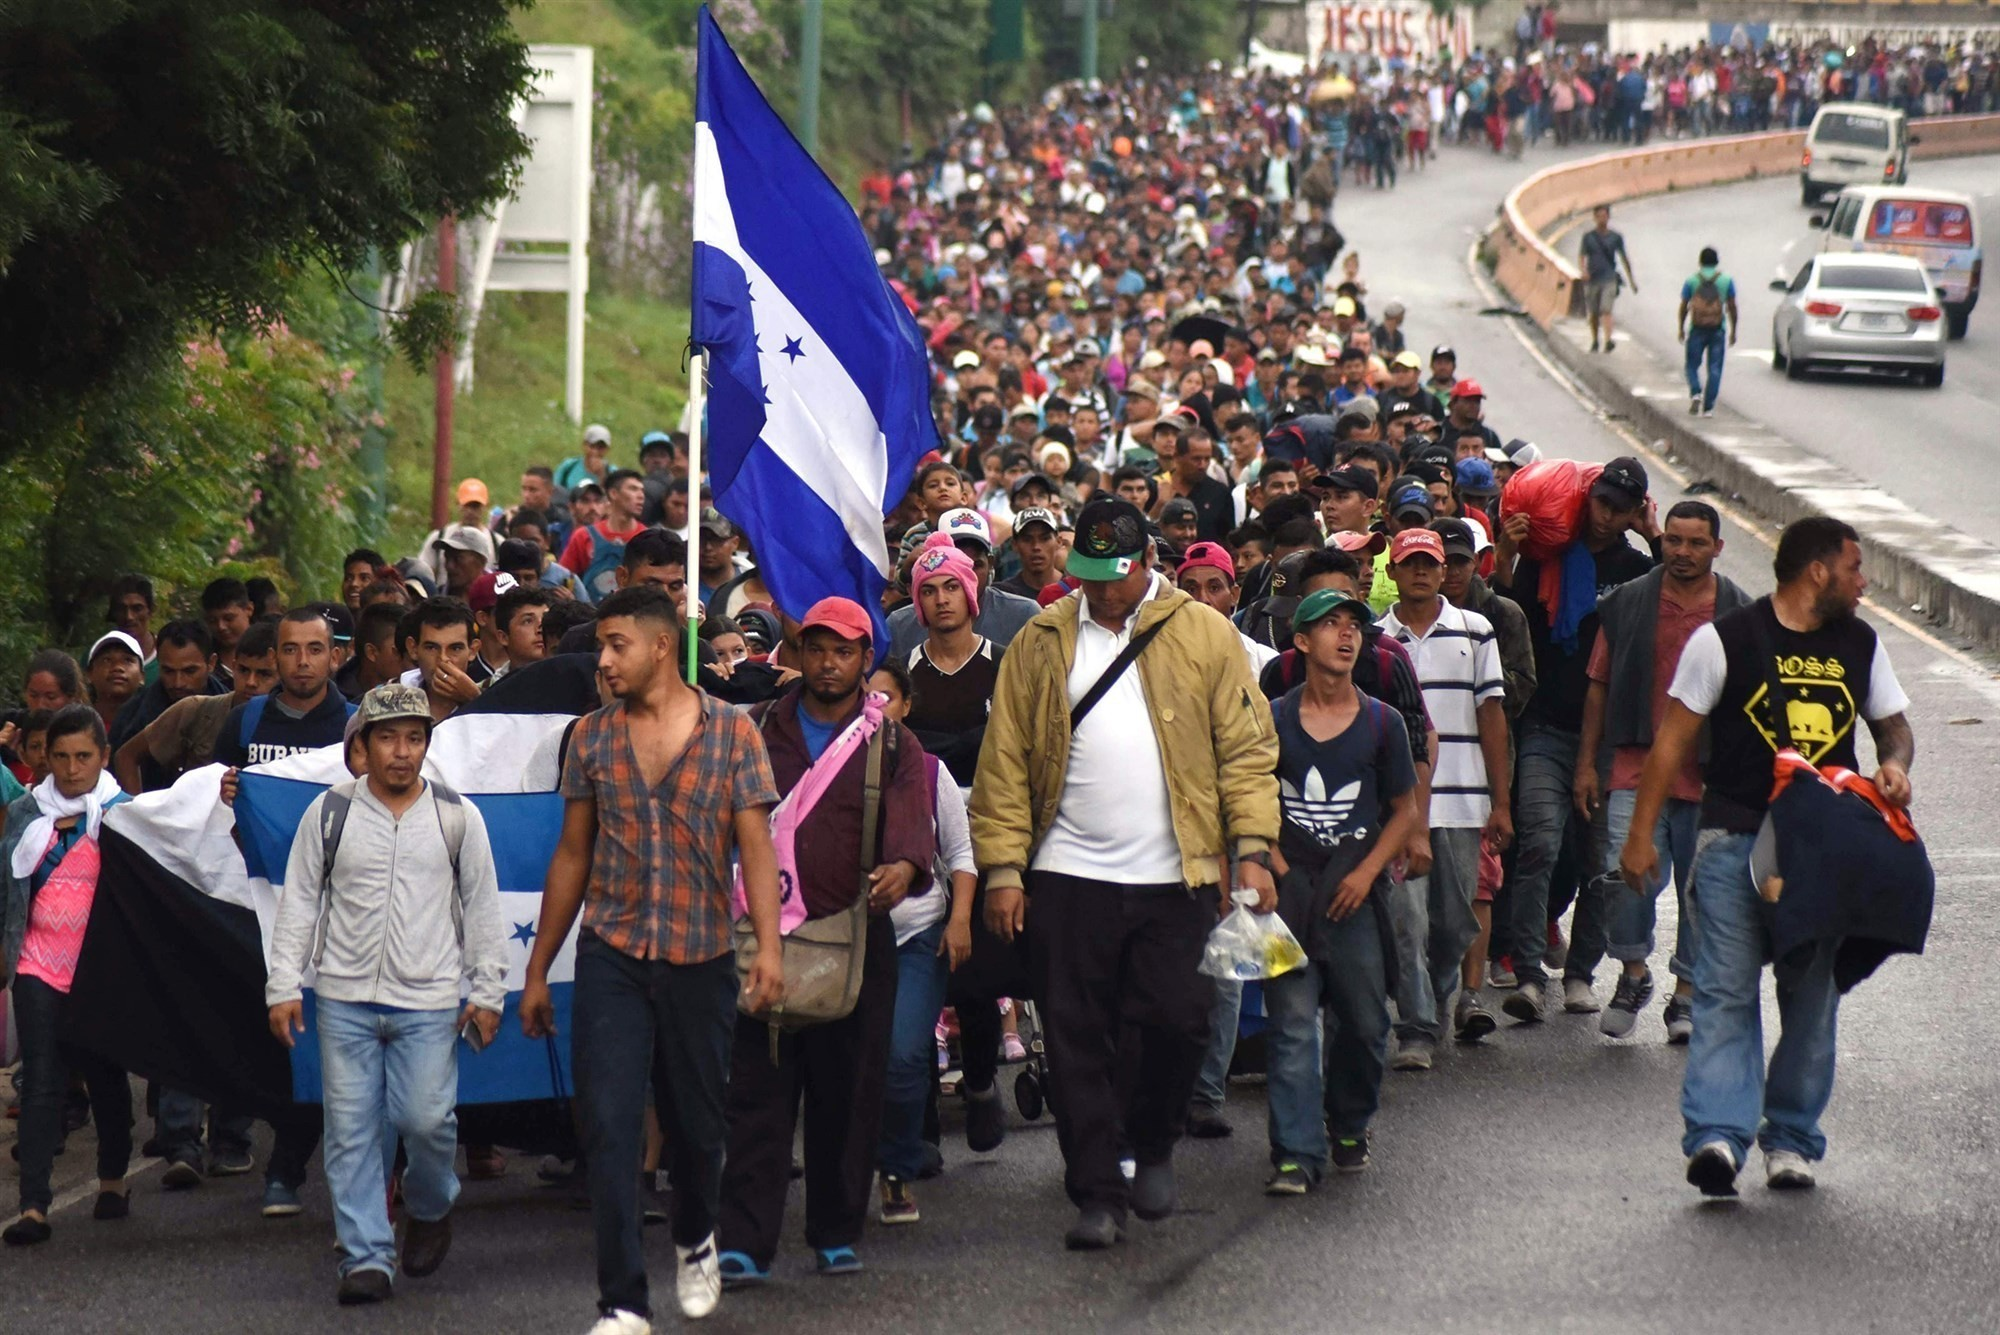 DHS: Hundreds in migrant caravan heading to U.S. are KNOWN criminals and gang members